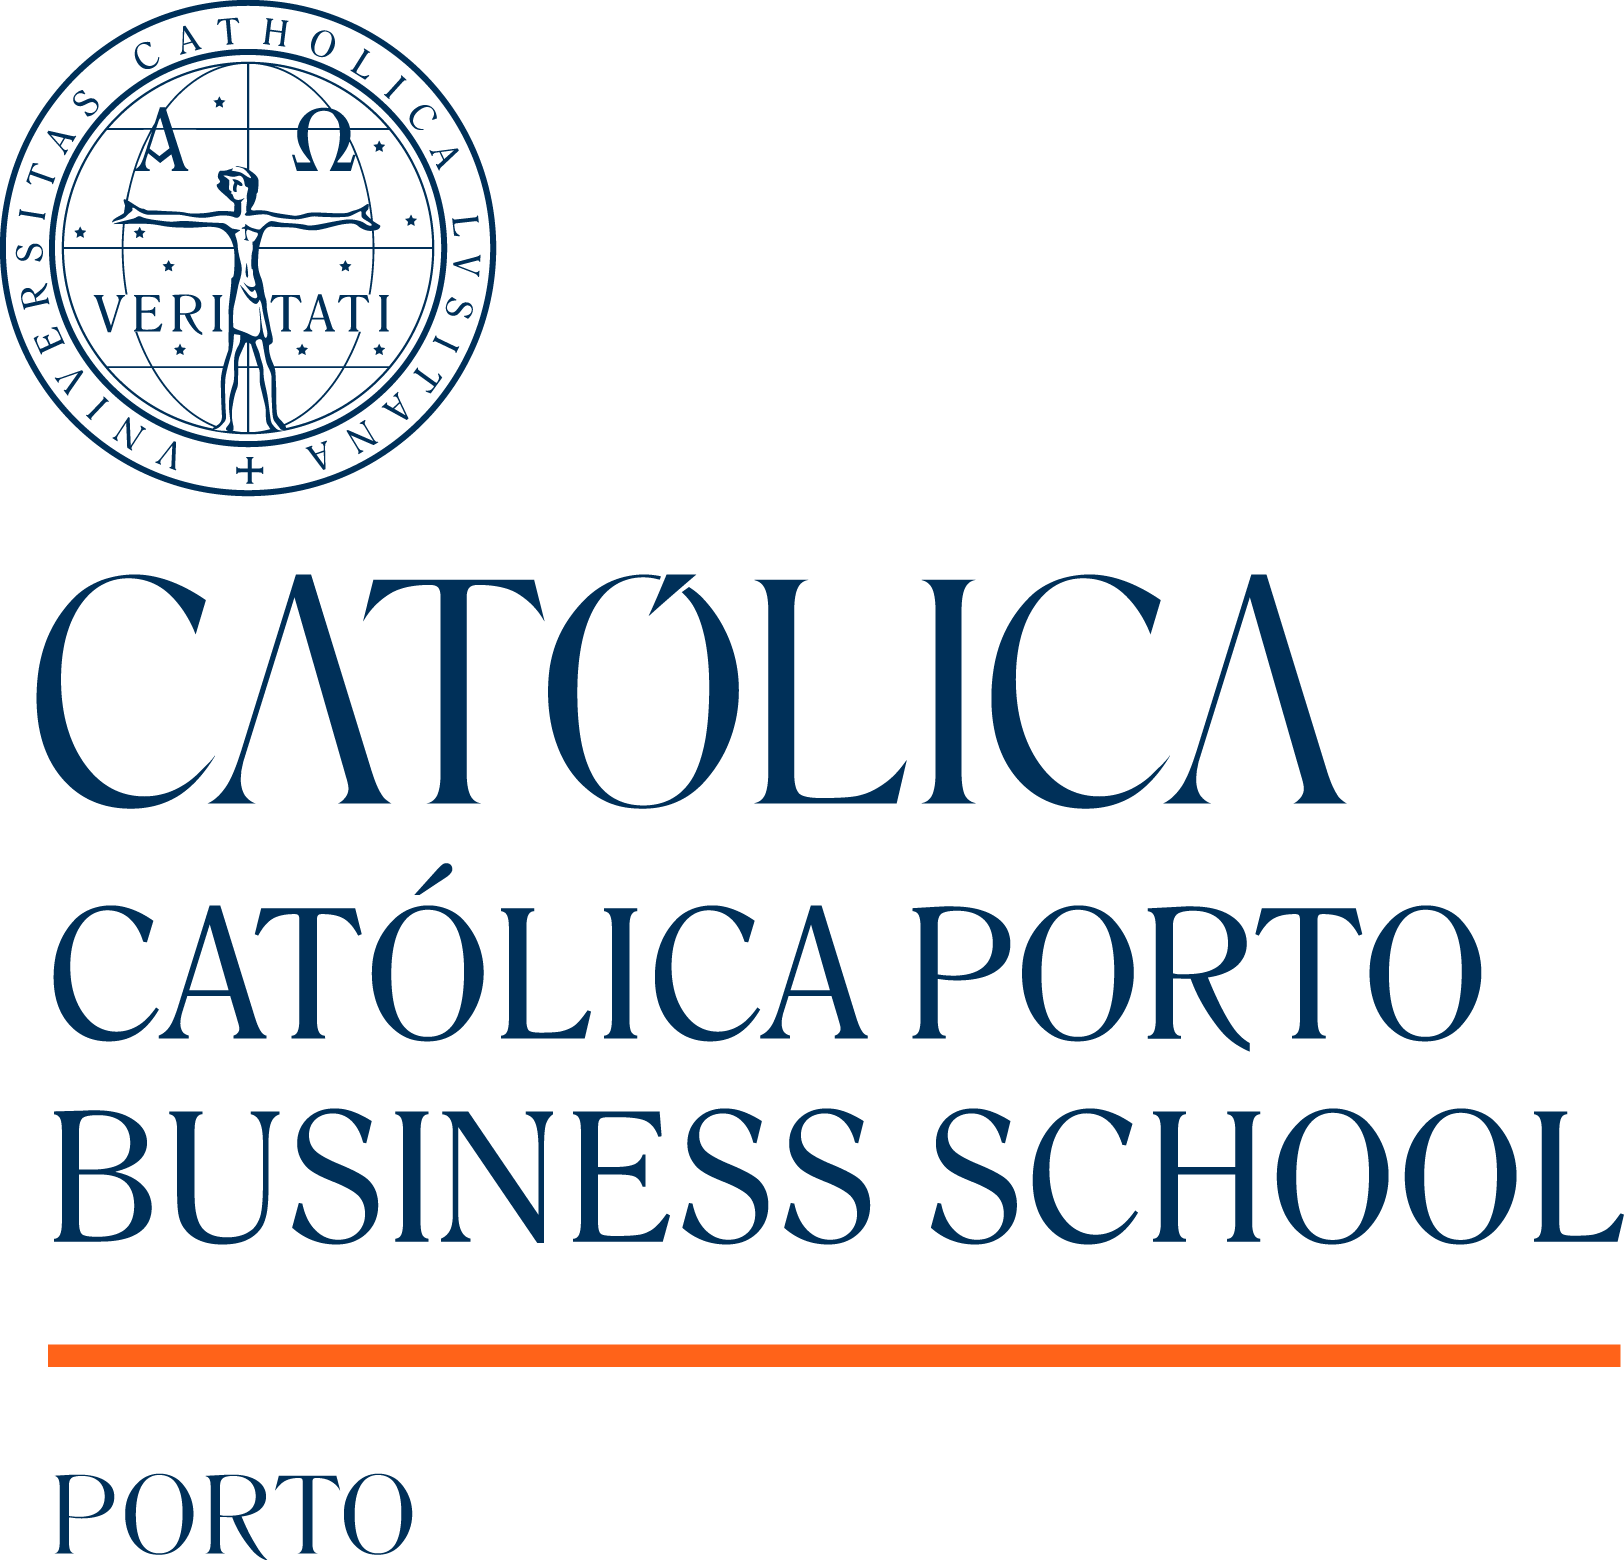 UNIVERSIDAD CATOLICA PORTUGUESA - CATOLICA PORTO BUSINESS SCHOOL